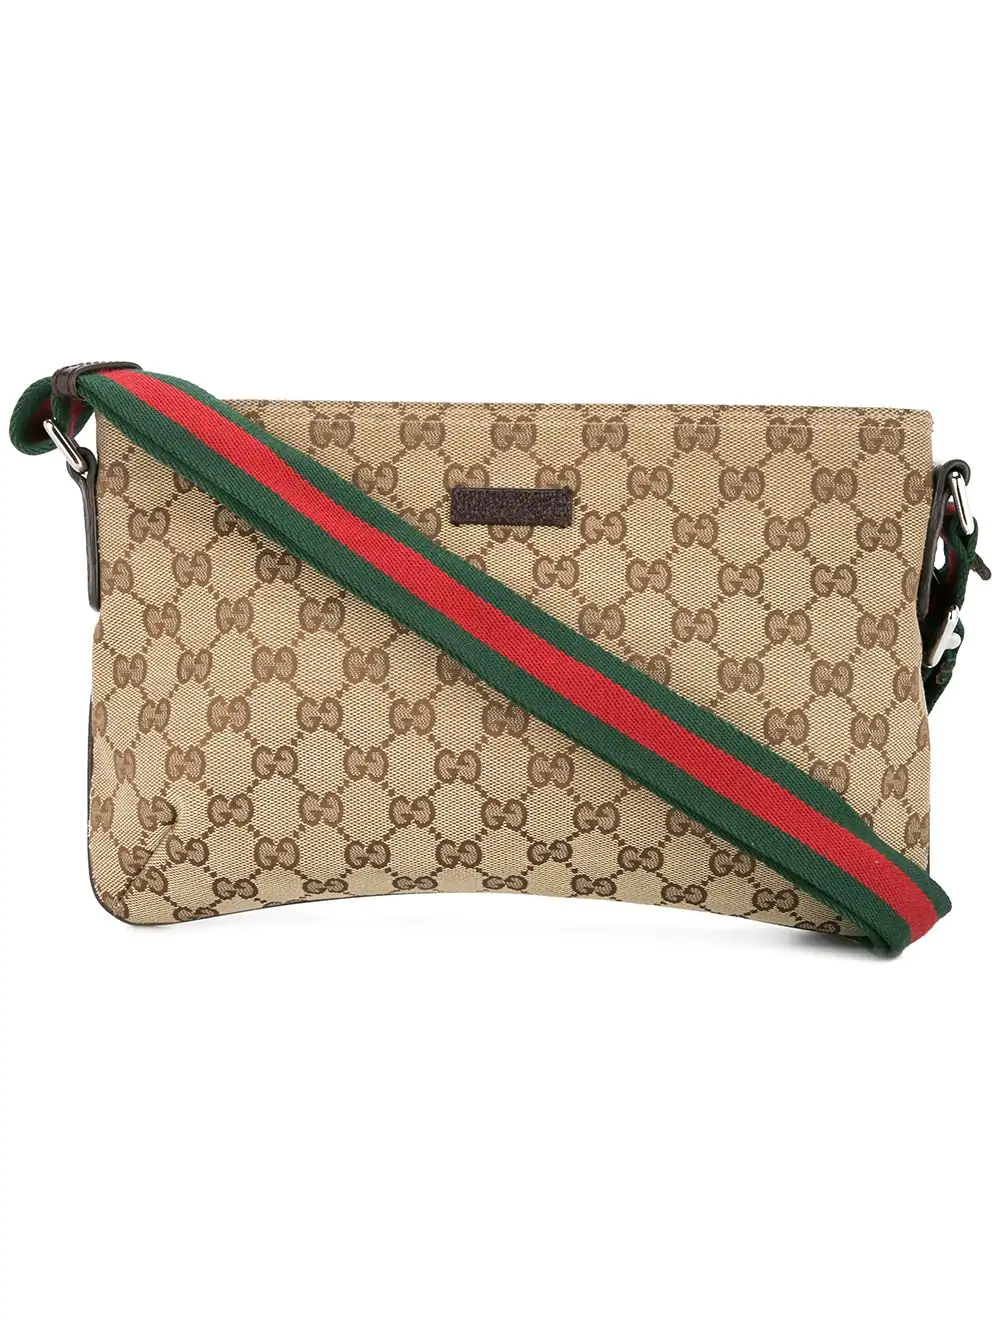 b14eed60185 Gucci Gg Shelly Line Crossbody Shoulder Bag In Brown